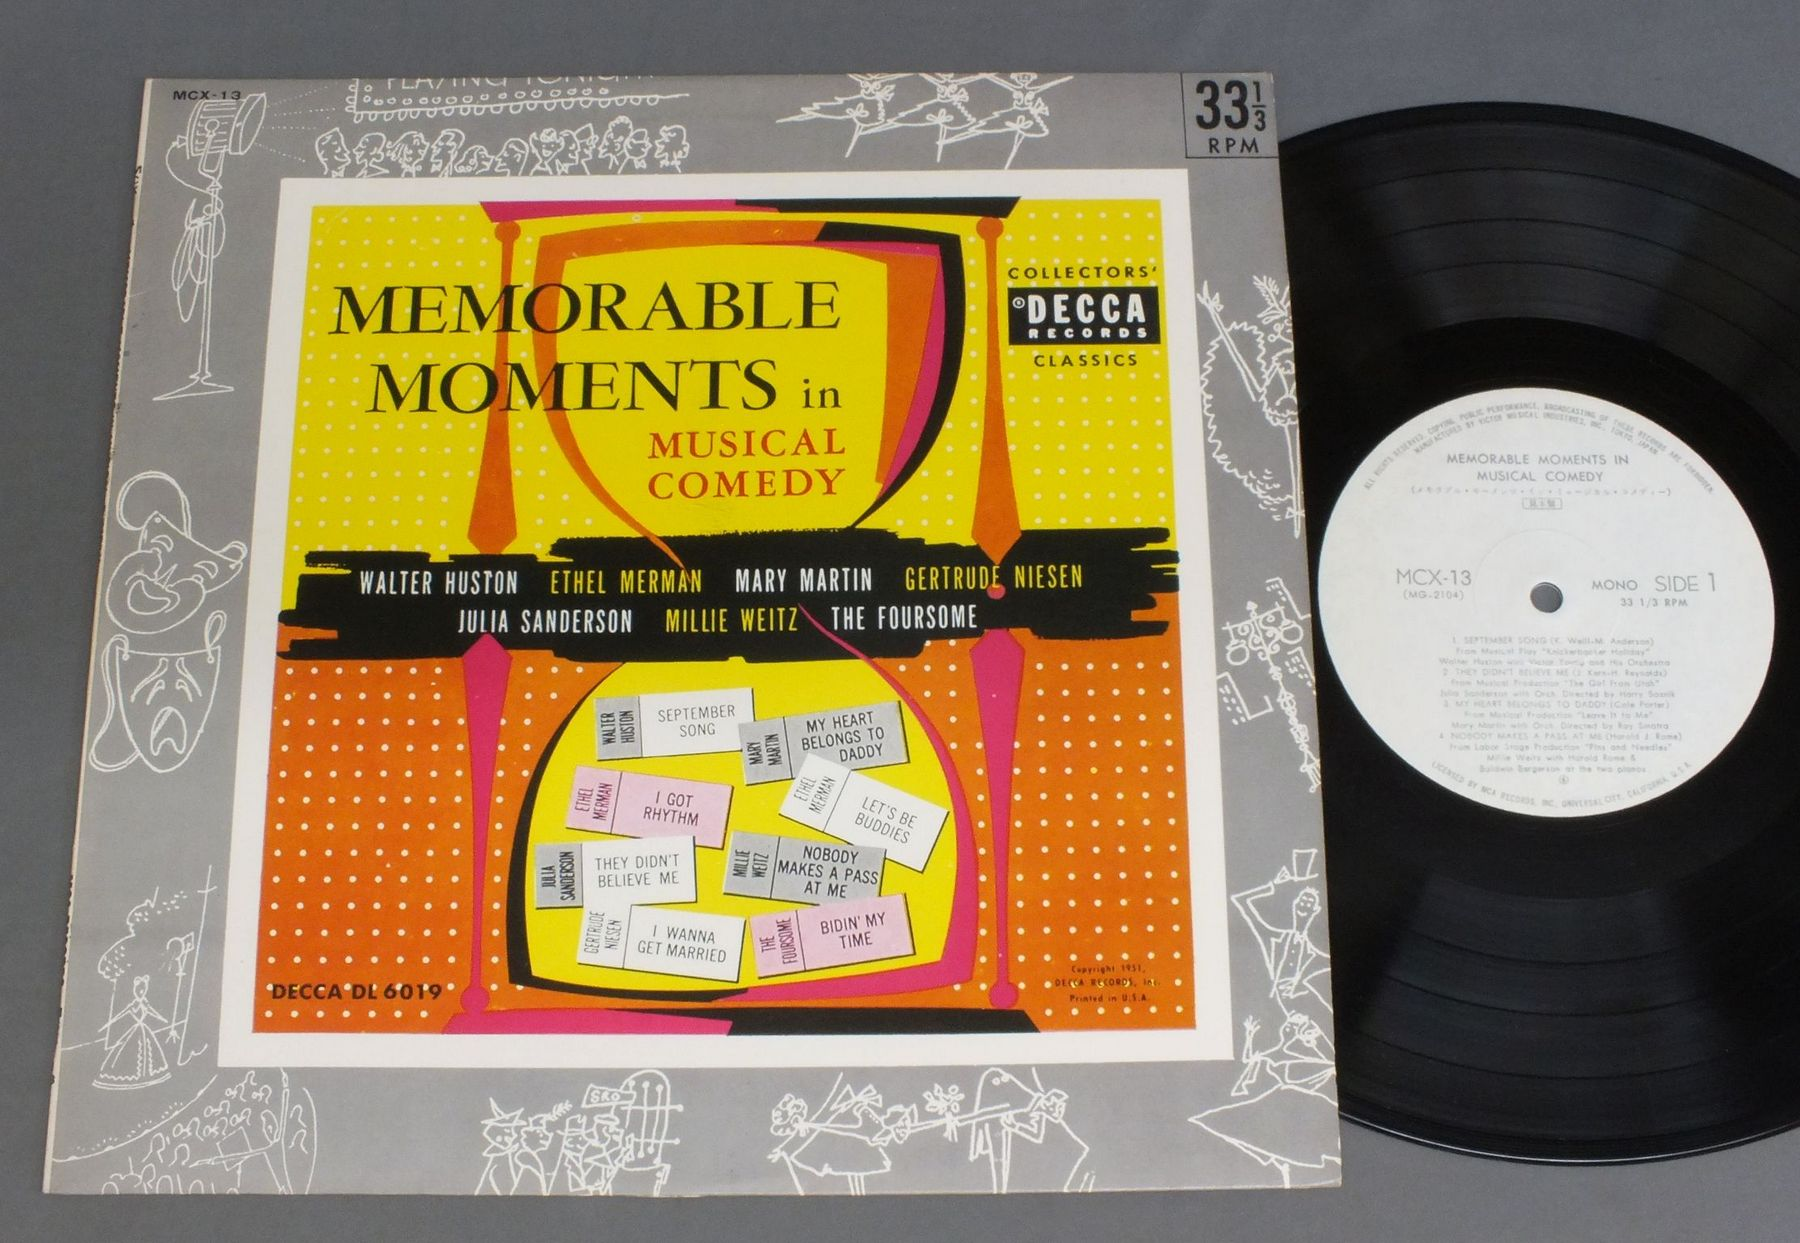 WALETER HUSTON ETC - MEMORABLE MOMENTS IN MUSICAL COMEDY - 25 cm